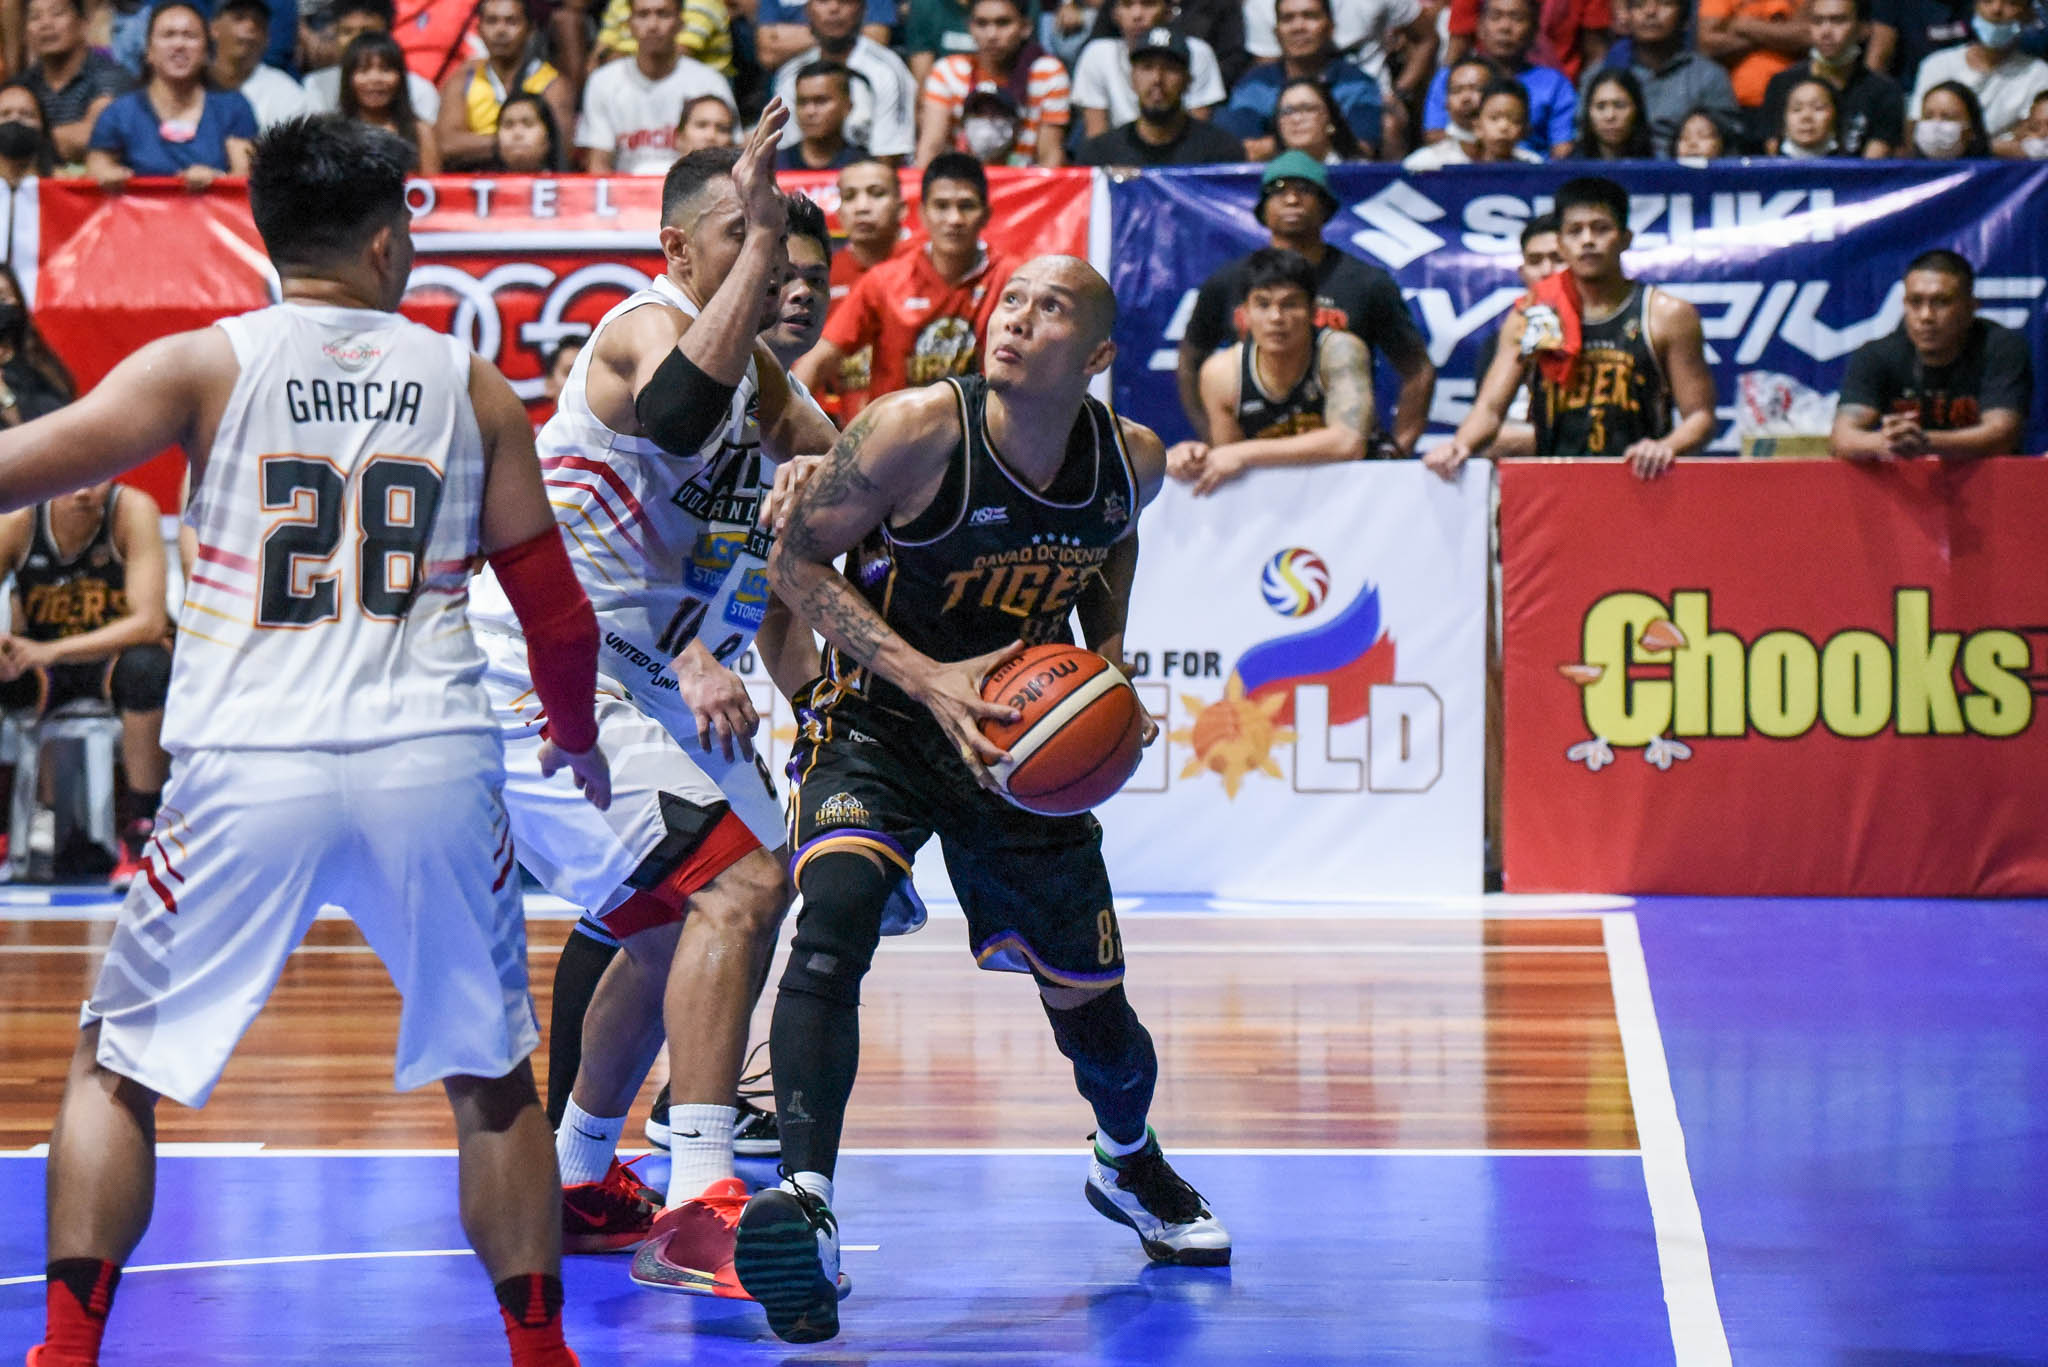 Tiebreaker Times Davao Occidental shows fang vs Bicol, take 1-0 lead in MPBL South QF Basketball MPBL News  Ronjay Buenafe Mon Kallos Mark Yee Jerome Garcia Emman Calo Don Dulay Davao Occidental Tigers Chris Lalata Billy Ray Robles Bicol Volcanoes Alwyn Alday 2019-20 MPBL Lakan Cup